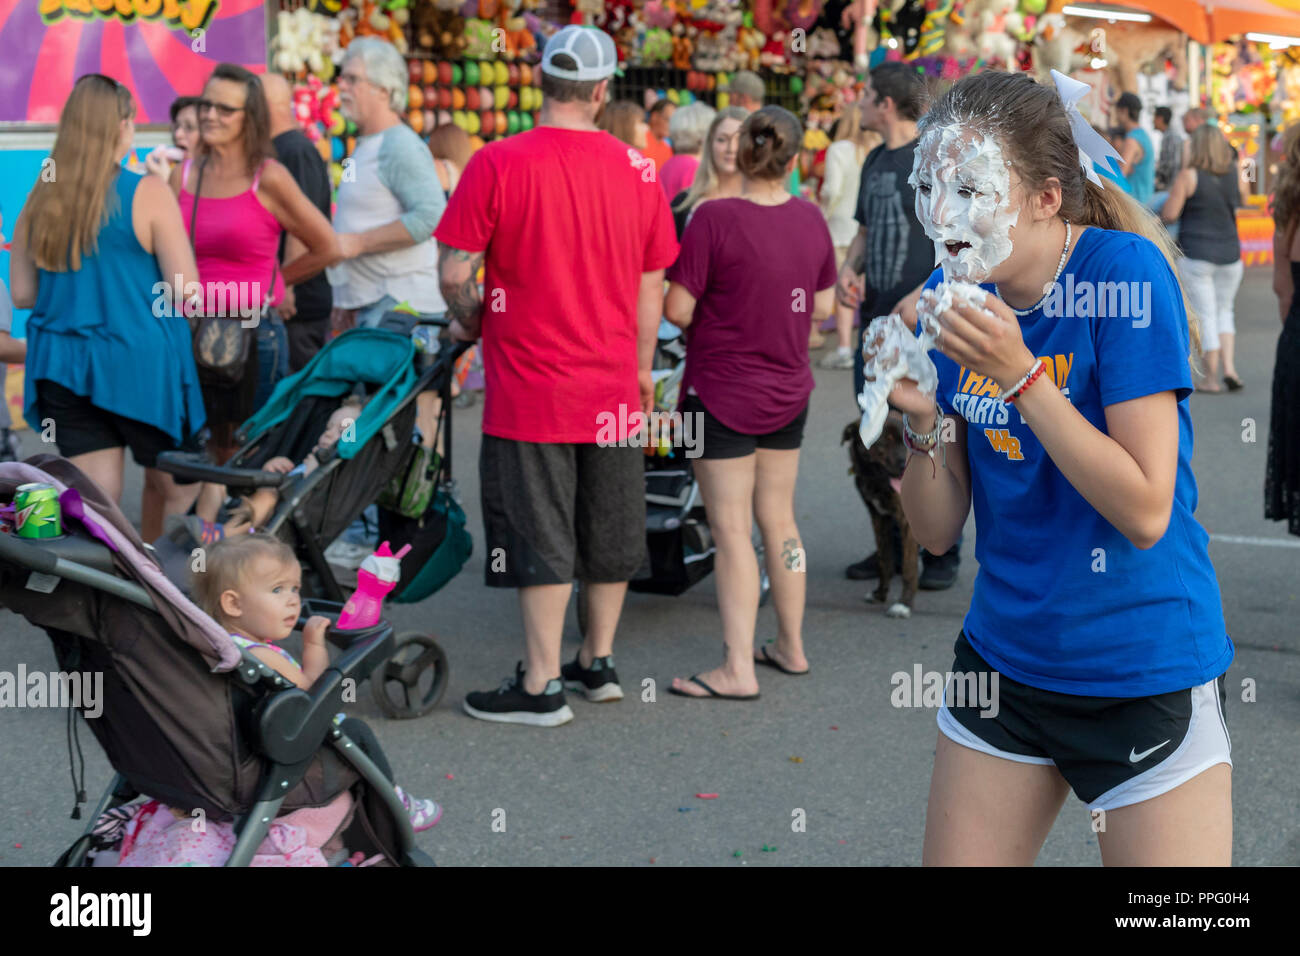 Wheat Ridge, Colorado - A high school student gets a pie in the face as a fundraiser during the annual Carnation Festival. No one seems to notice exce - Stock Image